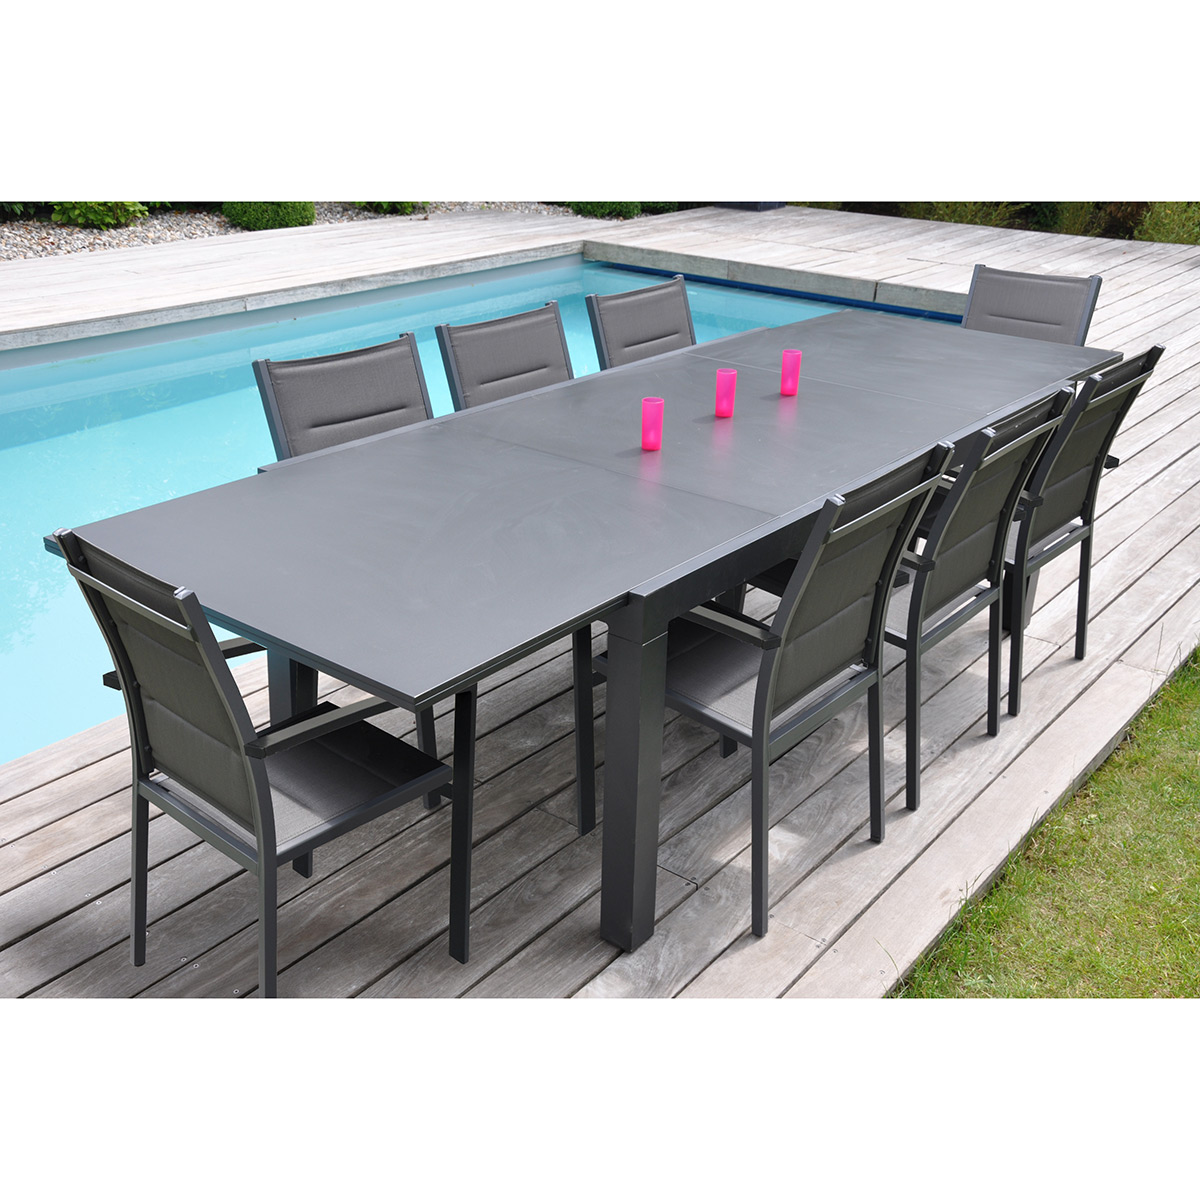 Table De Jardin En Teck Carrefour Table De Jardin 8 Places Carrefour